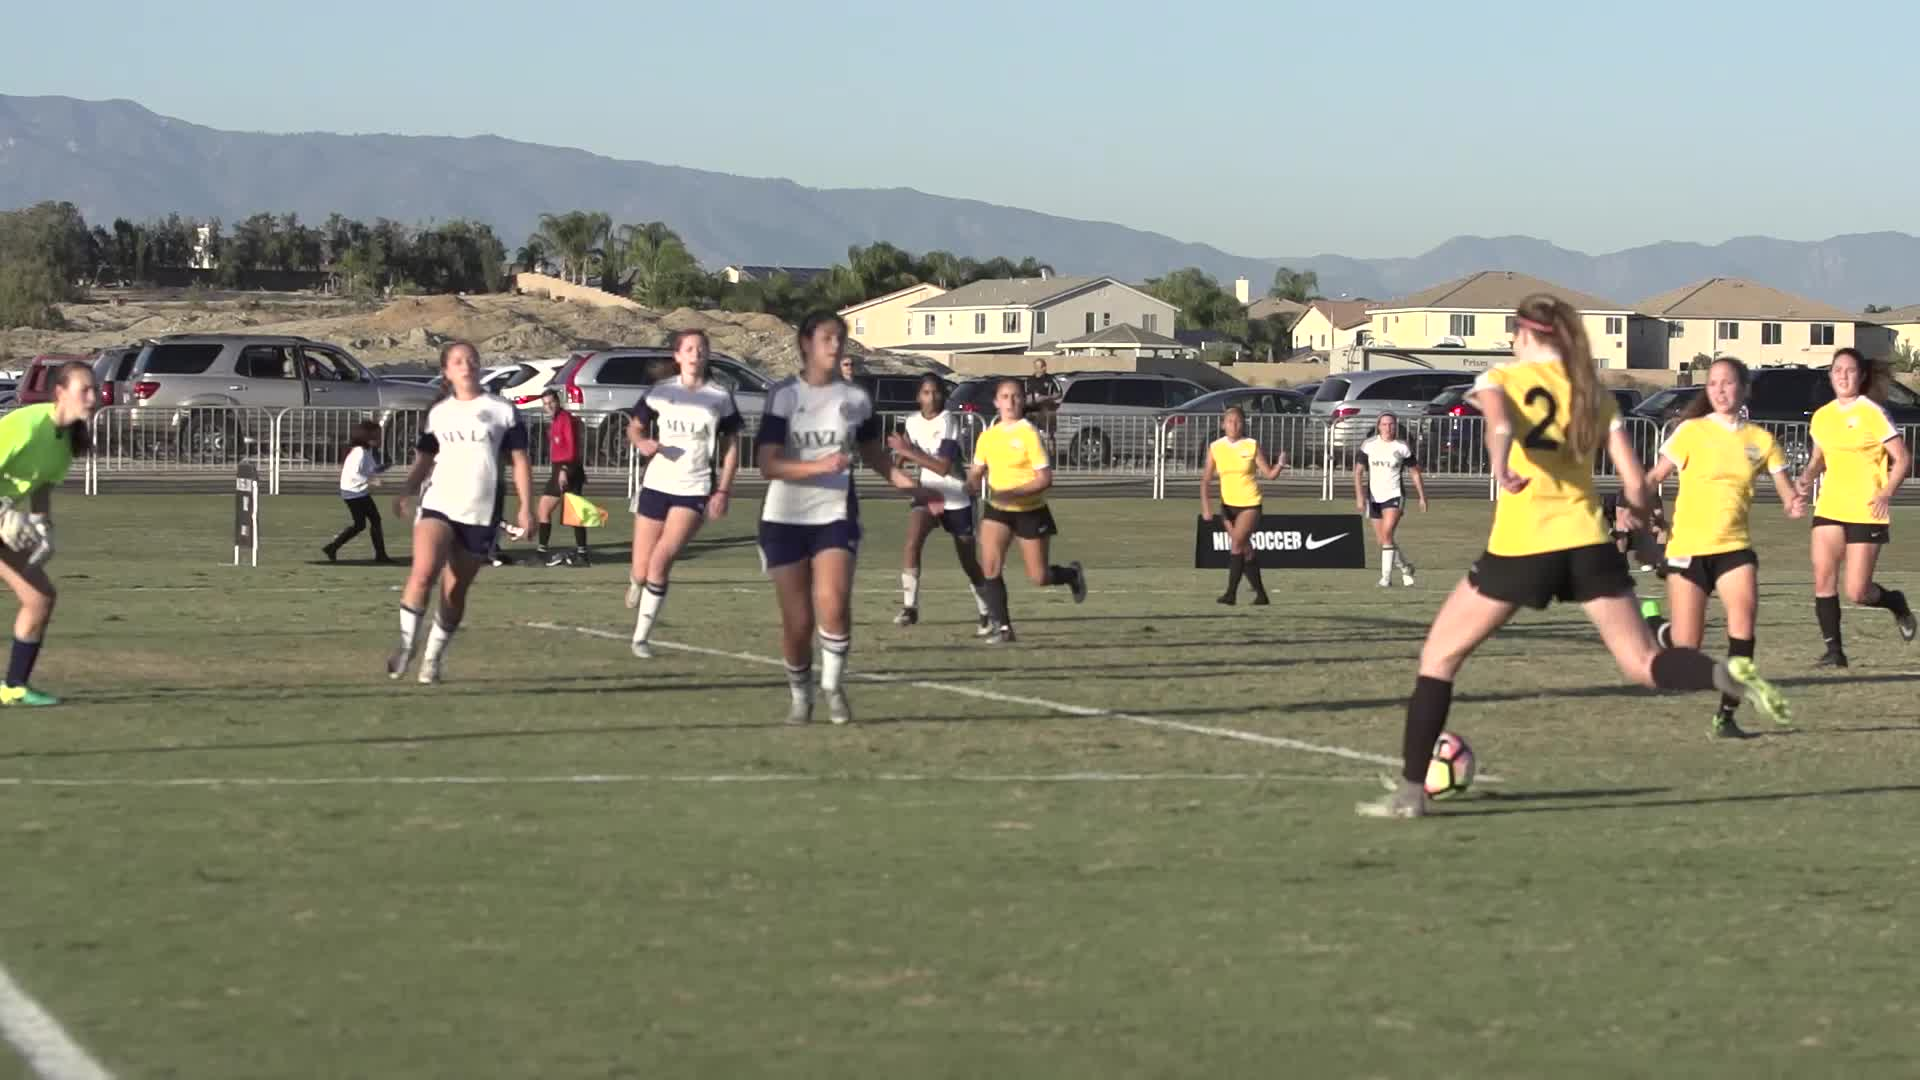 The first annual SilverLakes College Showcase hosted over 3,000 aspiring female athletes and over 250 college coaches at the newly minted facility in Norco, California.